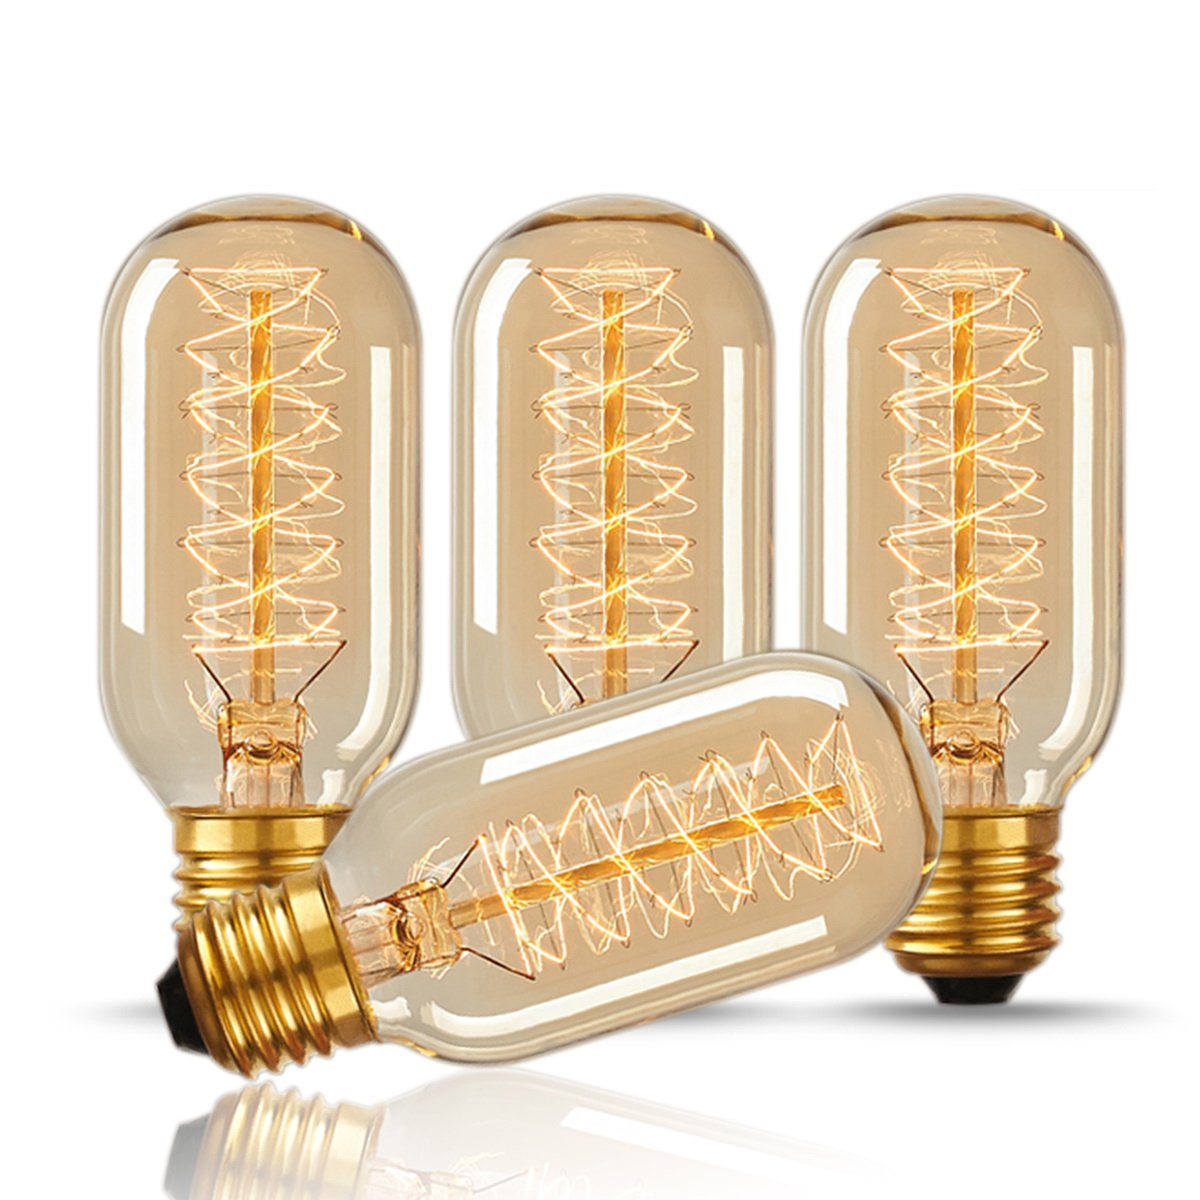 DORESshop T45 40W Vintage Antique Light Bulbs, Warm White, E26 Edison Tubular Style Bulb, Clear Glass, 110-130 Volts, Filament Light Bulbs for Home Light Fixtures Decorative, Dimmable(4 Pack)